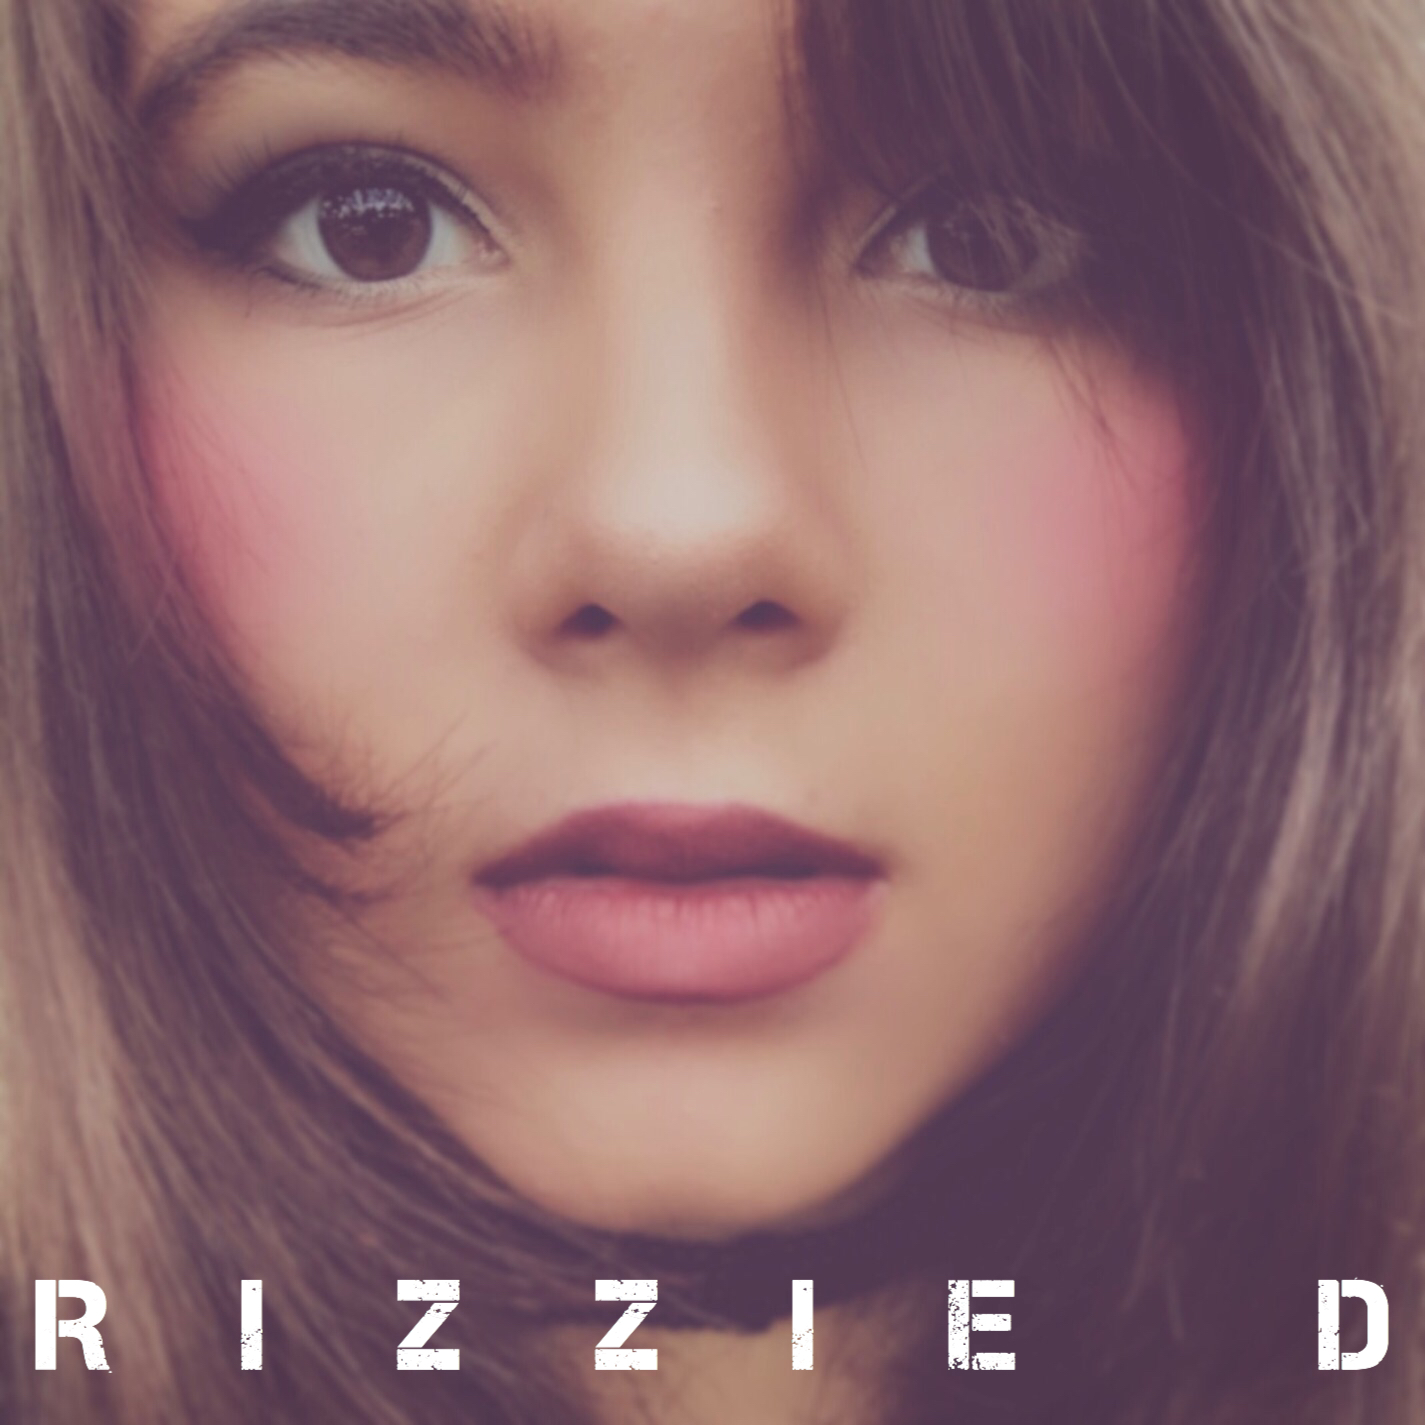 One of junior Darina Miroedova's album covers. Miroedova amassed a large online following by doing karaoke, and is now beginning to get into songwriting.